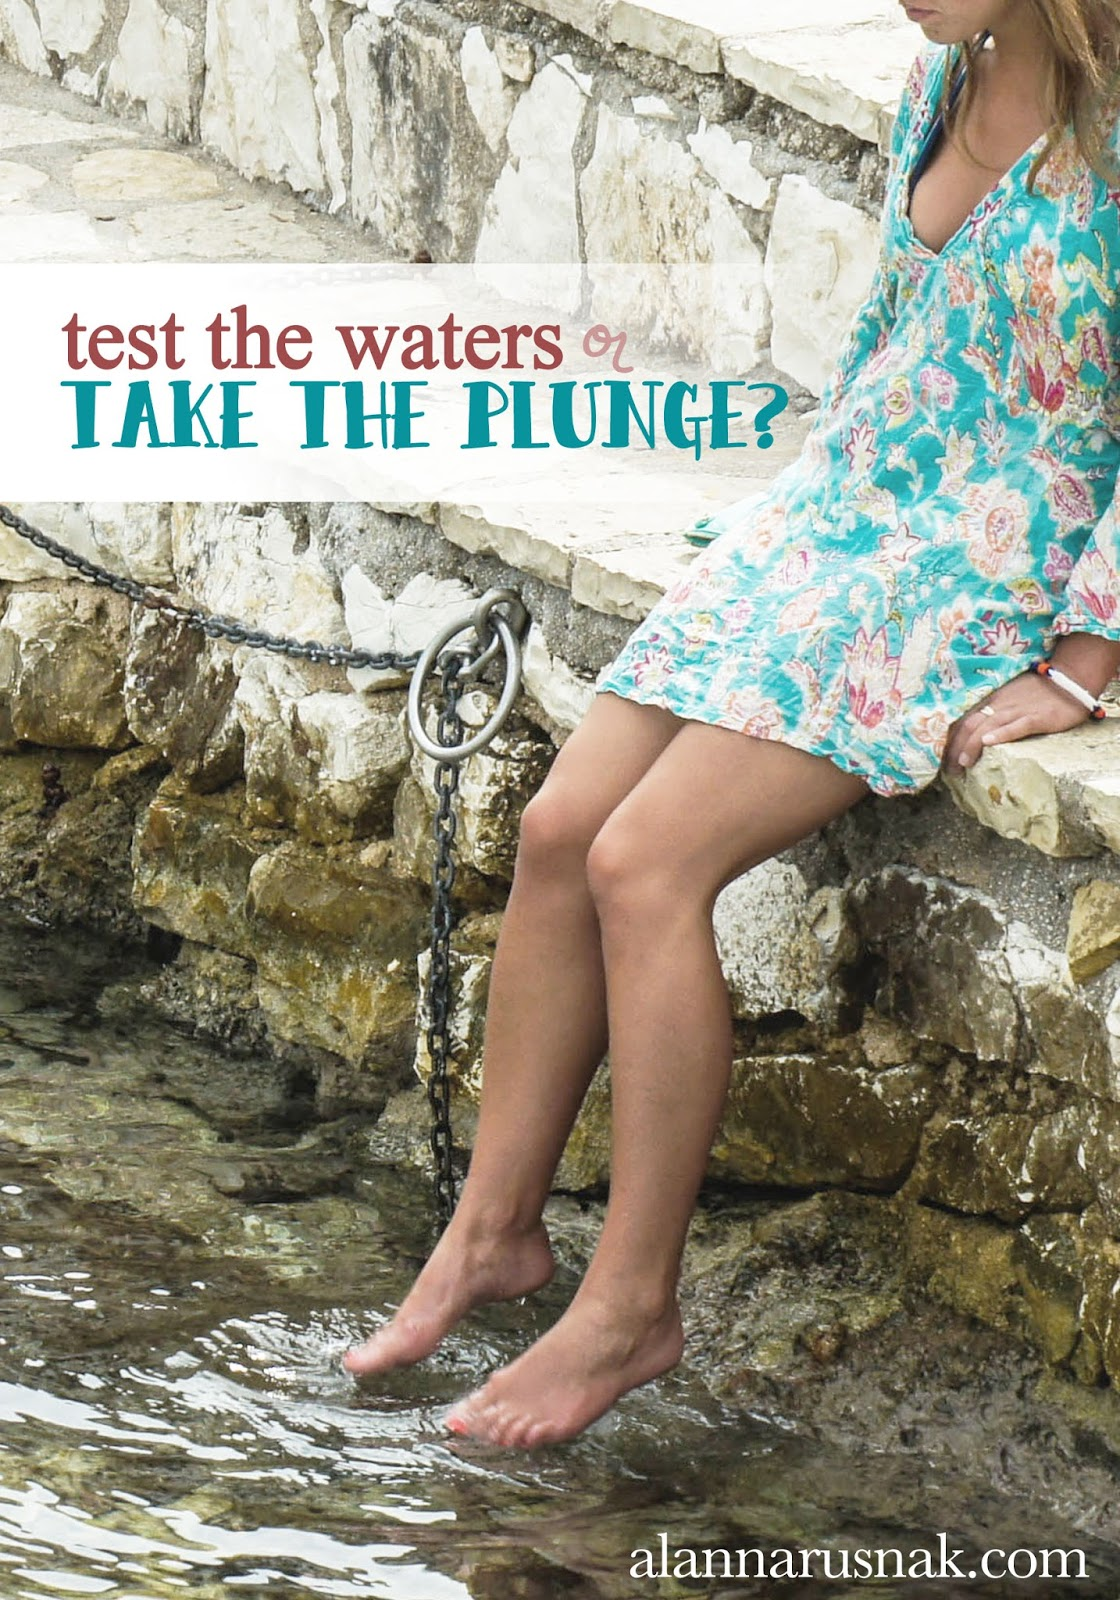 test the waters or take the plunge?